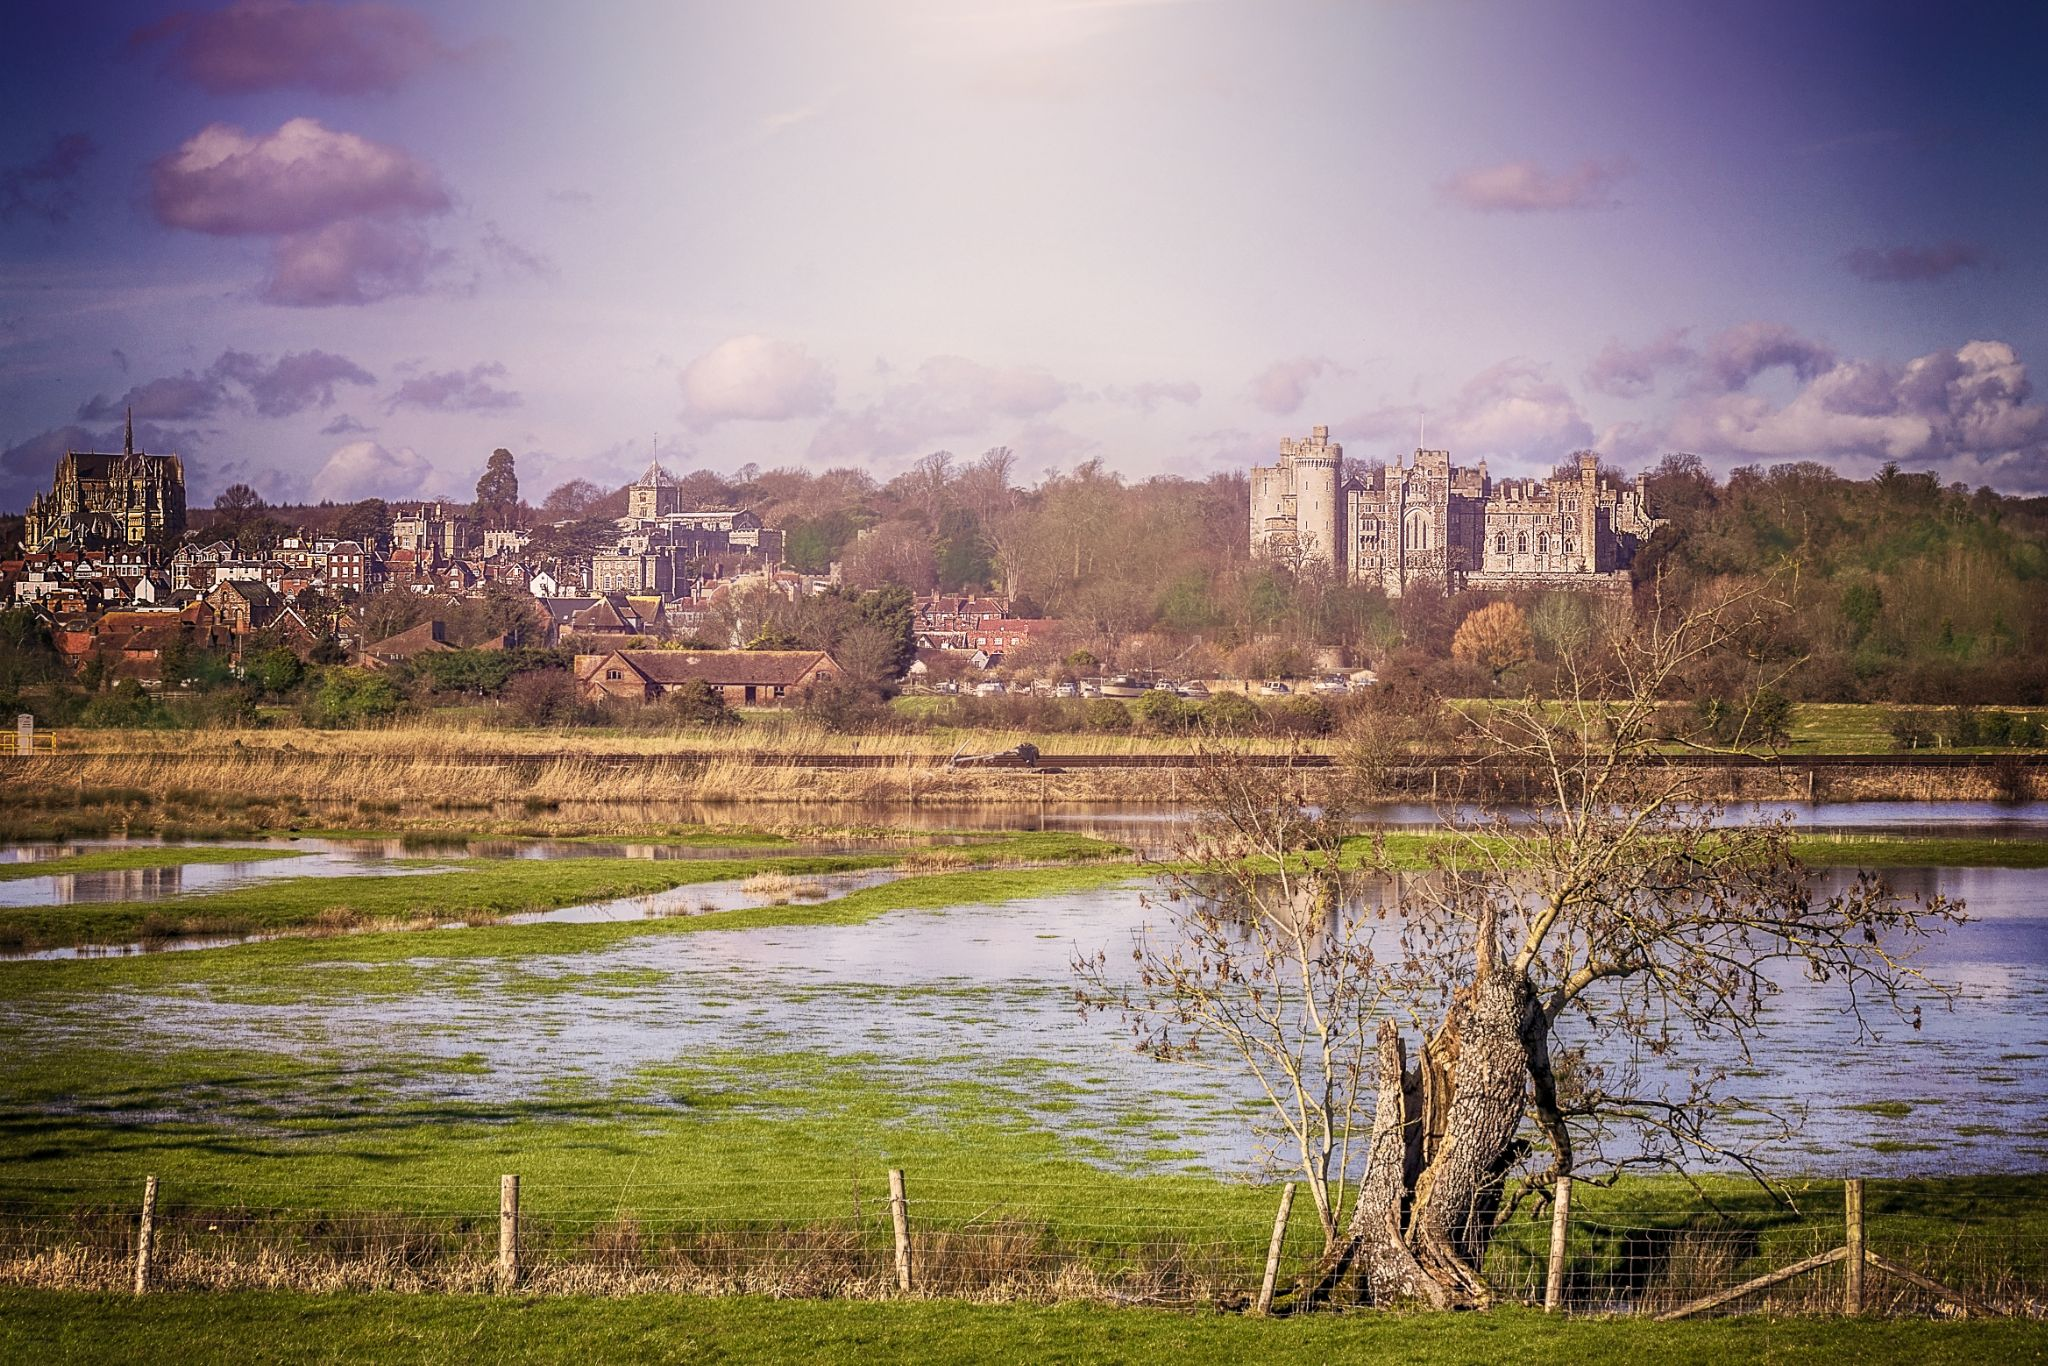 Arundel Castle and Cathedral by tonyrabina